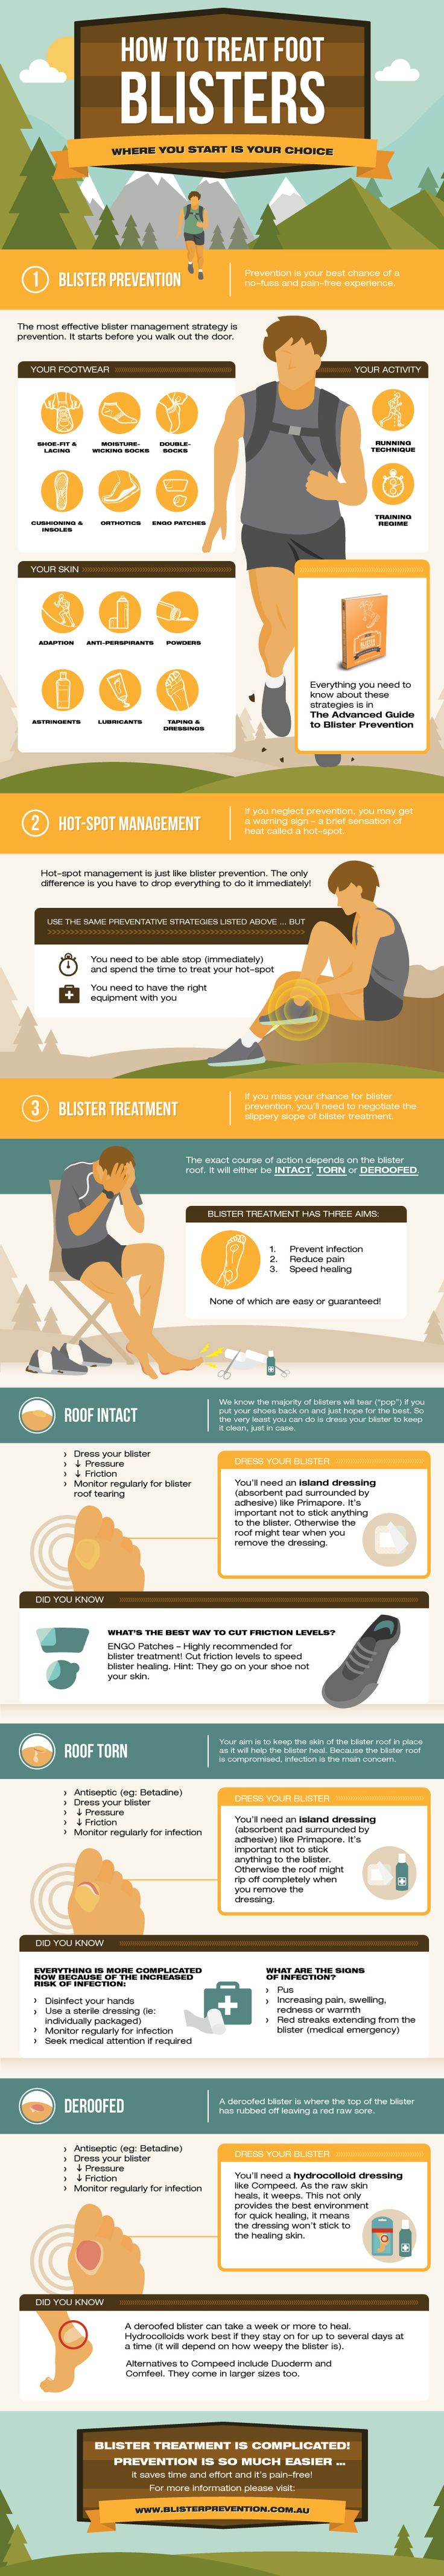 how to treat your foot blister right